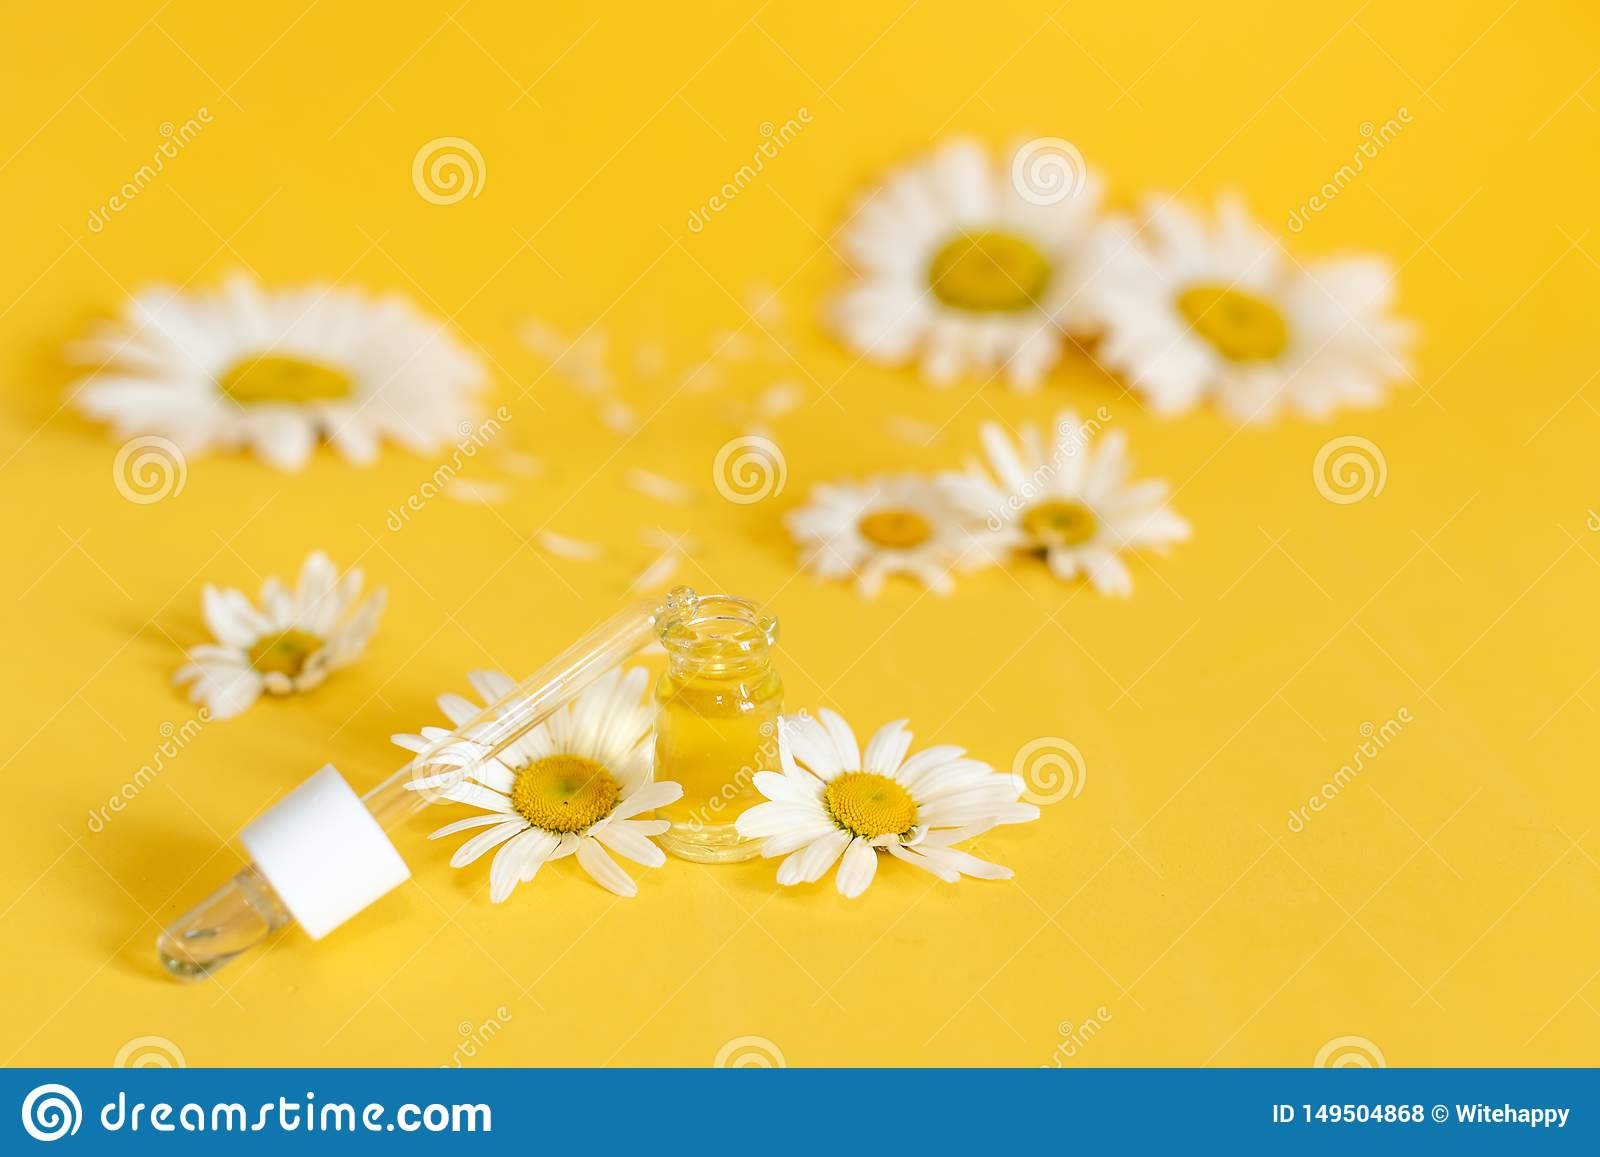 Essential oil in glass bottle with fresh chamomile flowers, beauty treatment. Spa concept. Selective focus. Fragrant oil of